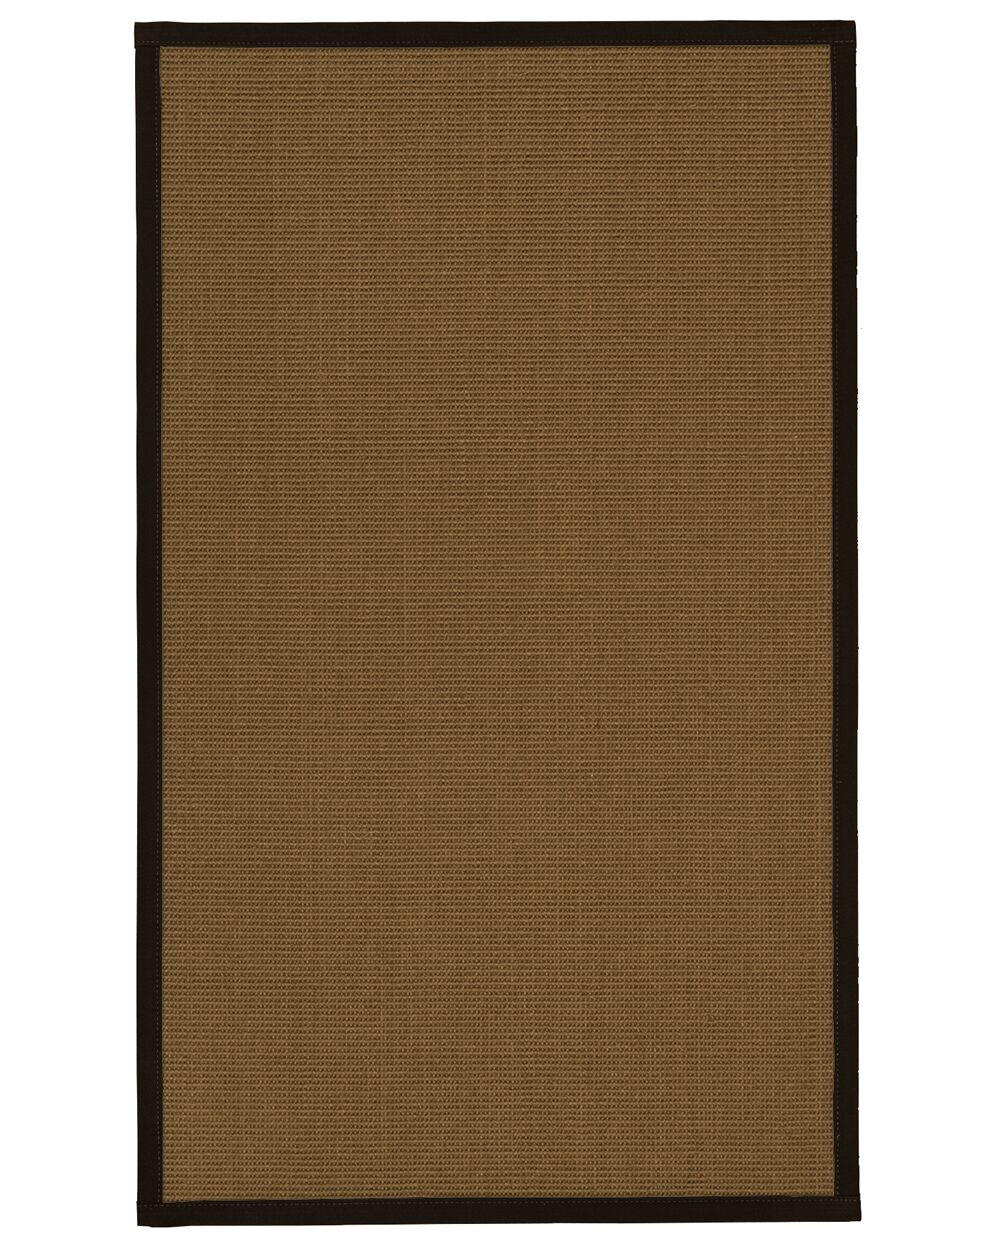 Aderyn Hand-Woven Beige Area Rug Rug Size: Rectangle 4' x 6'